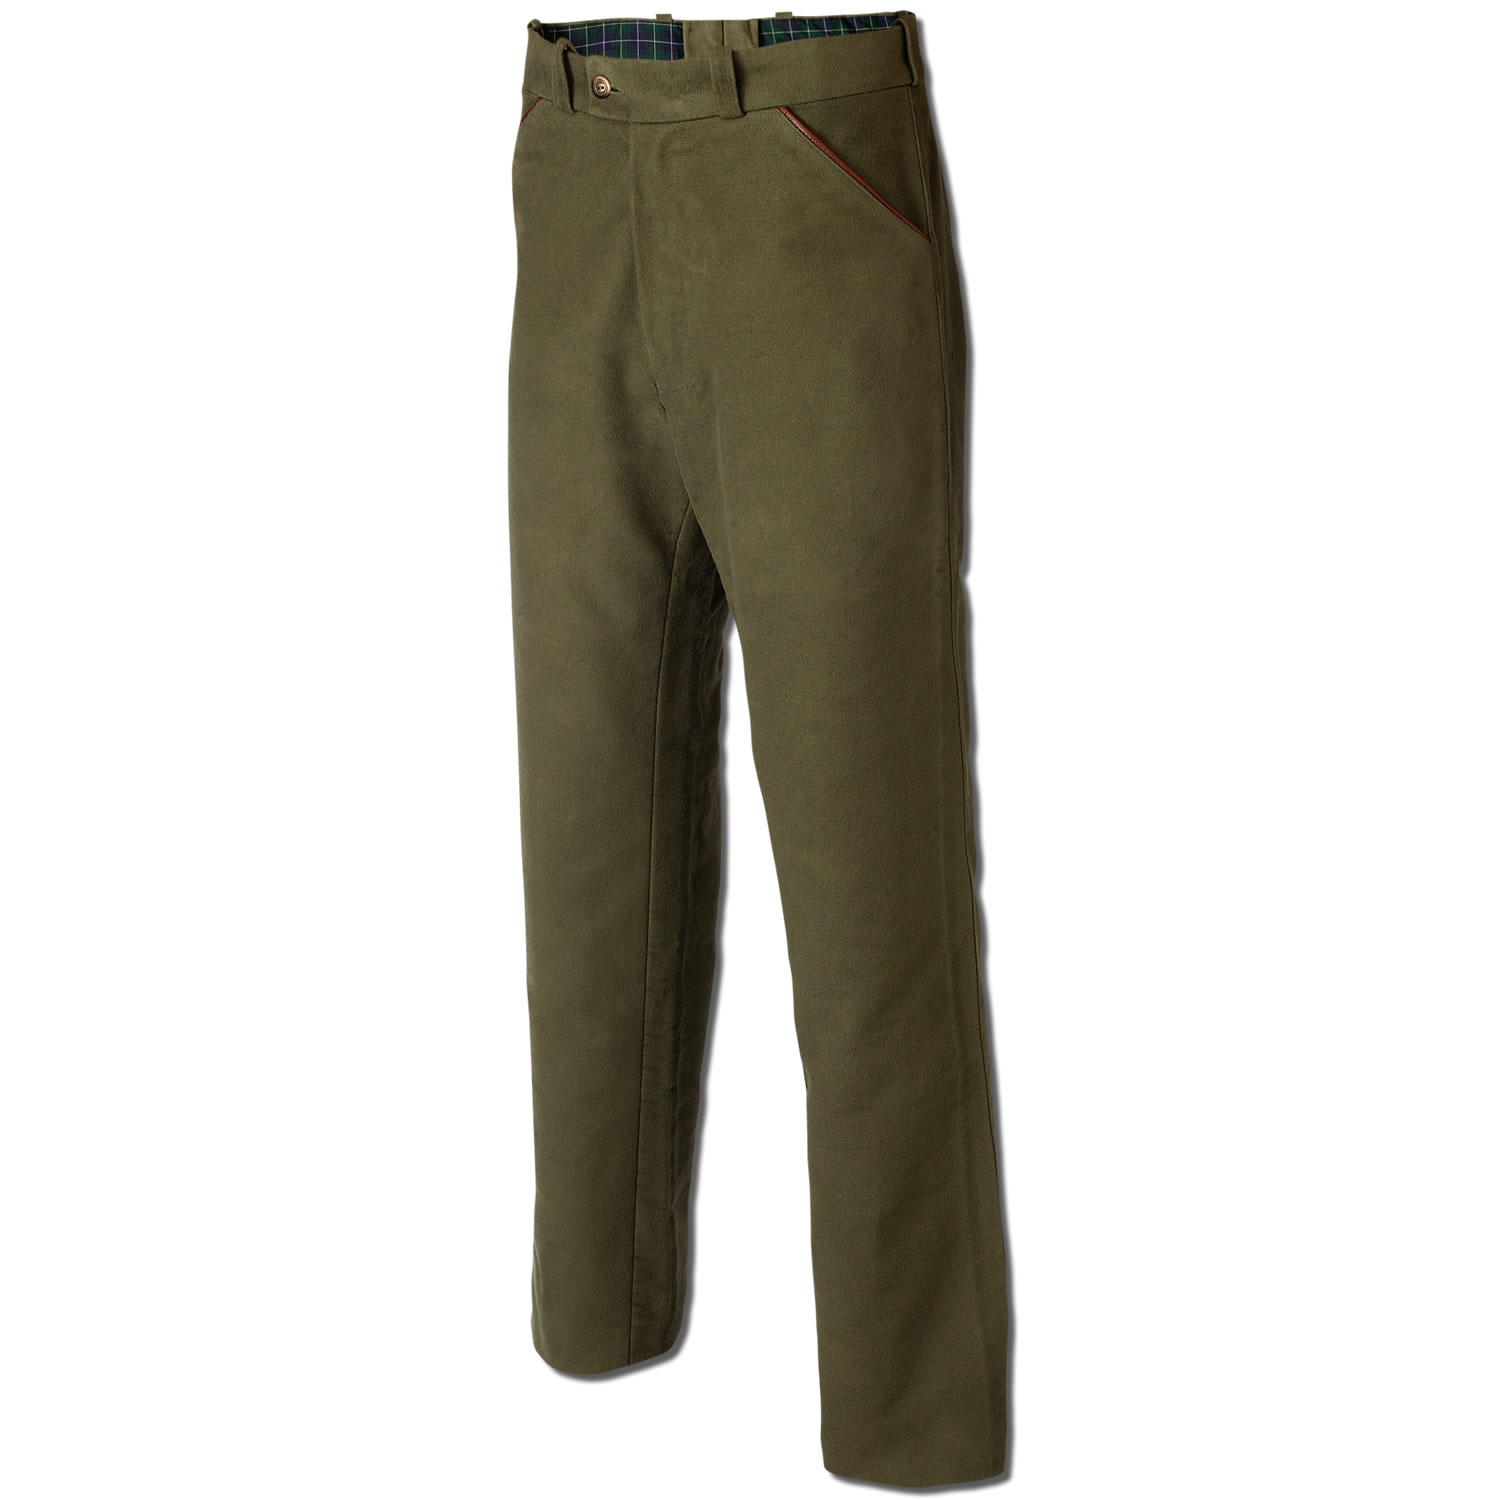 Now on sale at humorrmundiall.ga: our humorrmundiall.ga Moleskin Pants. Get free shipping and the best prices on Men's Pants and Jeans.